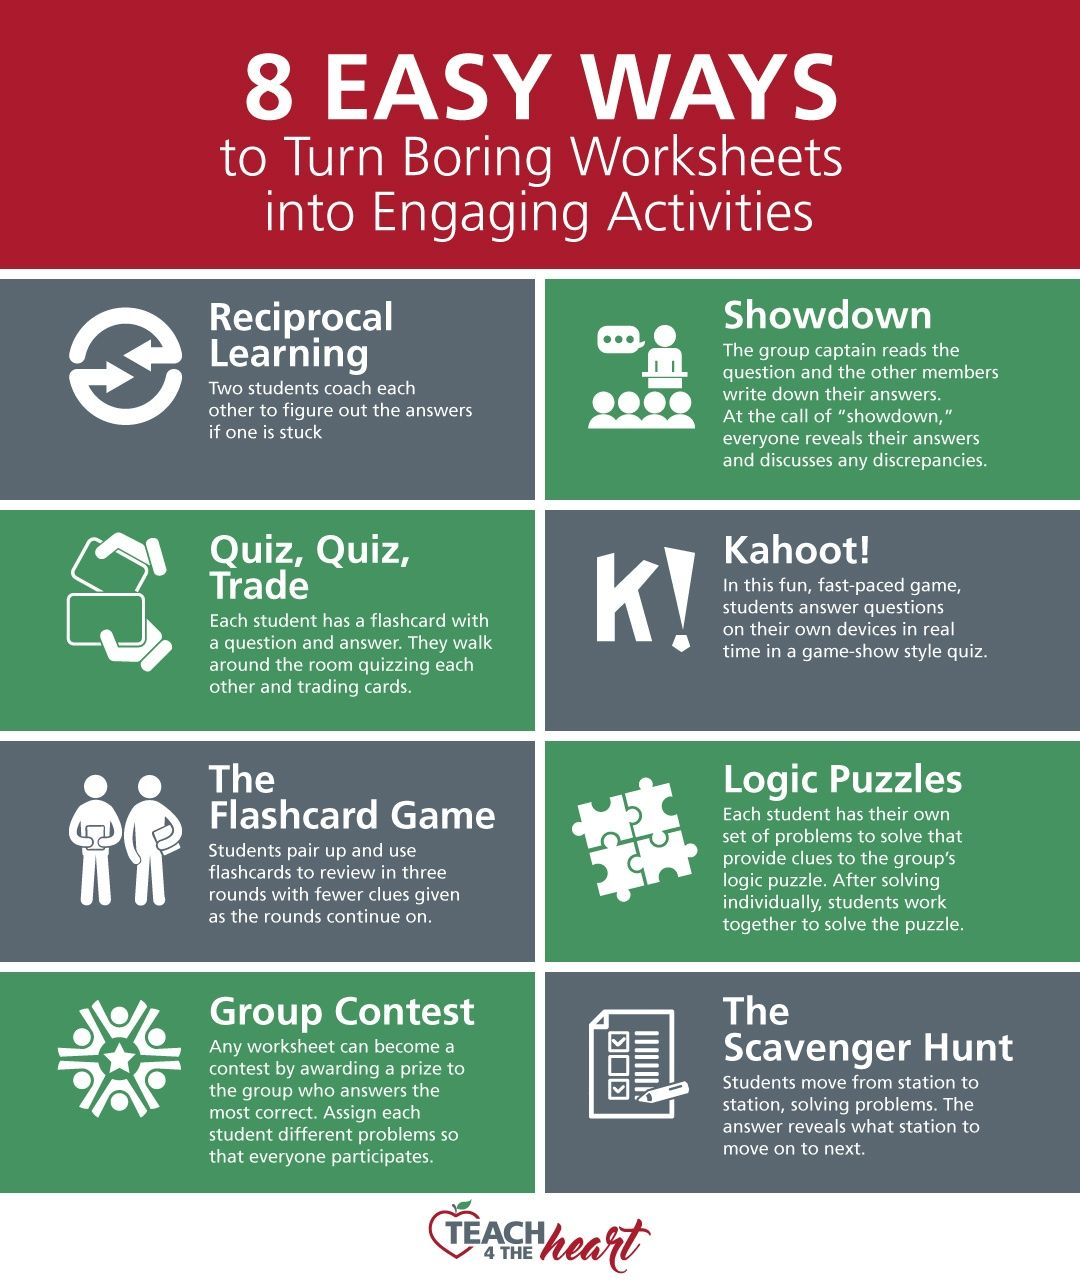 7 Easy Ways To Turn Boring Worksheets Into Engaging